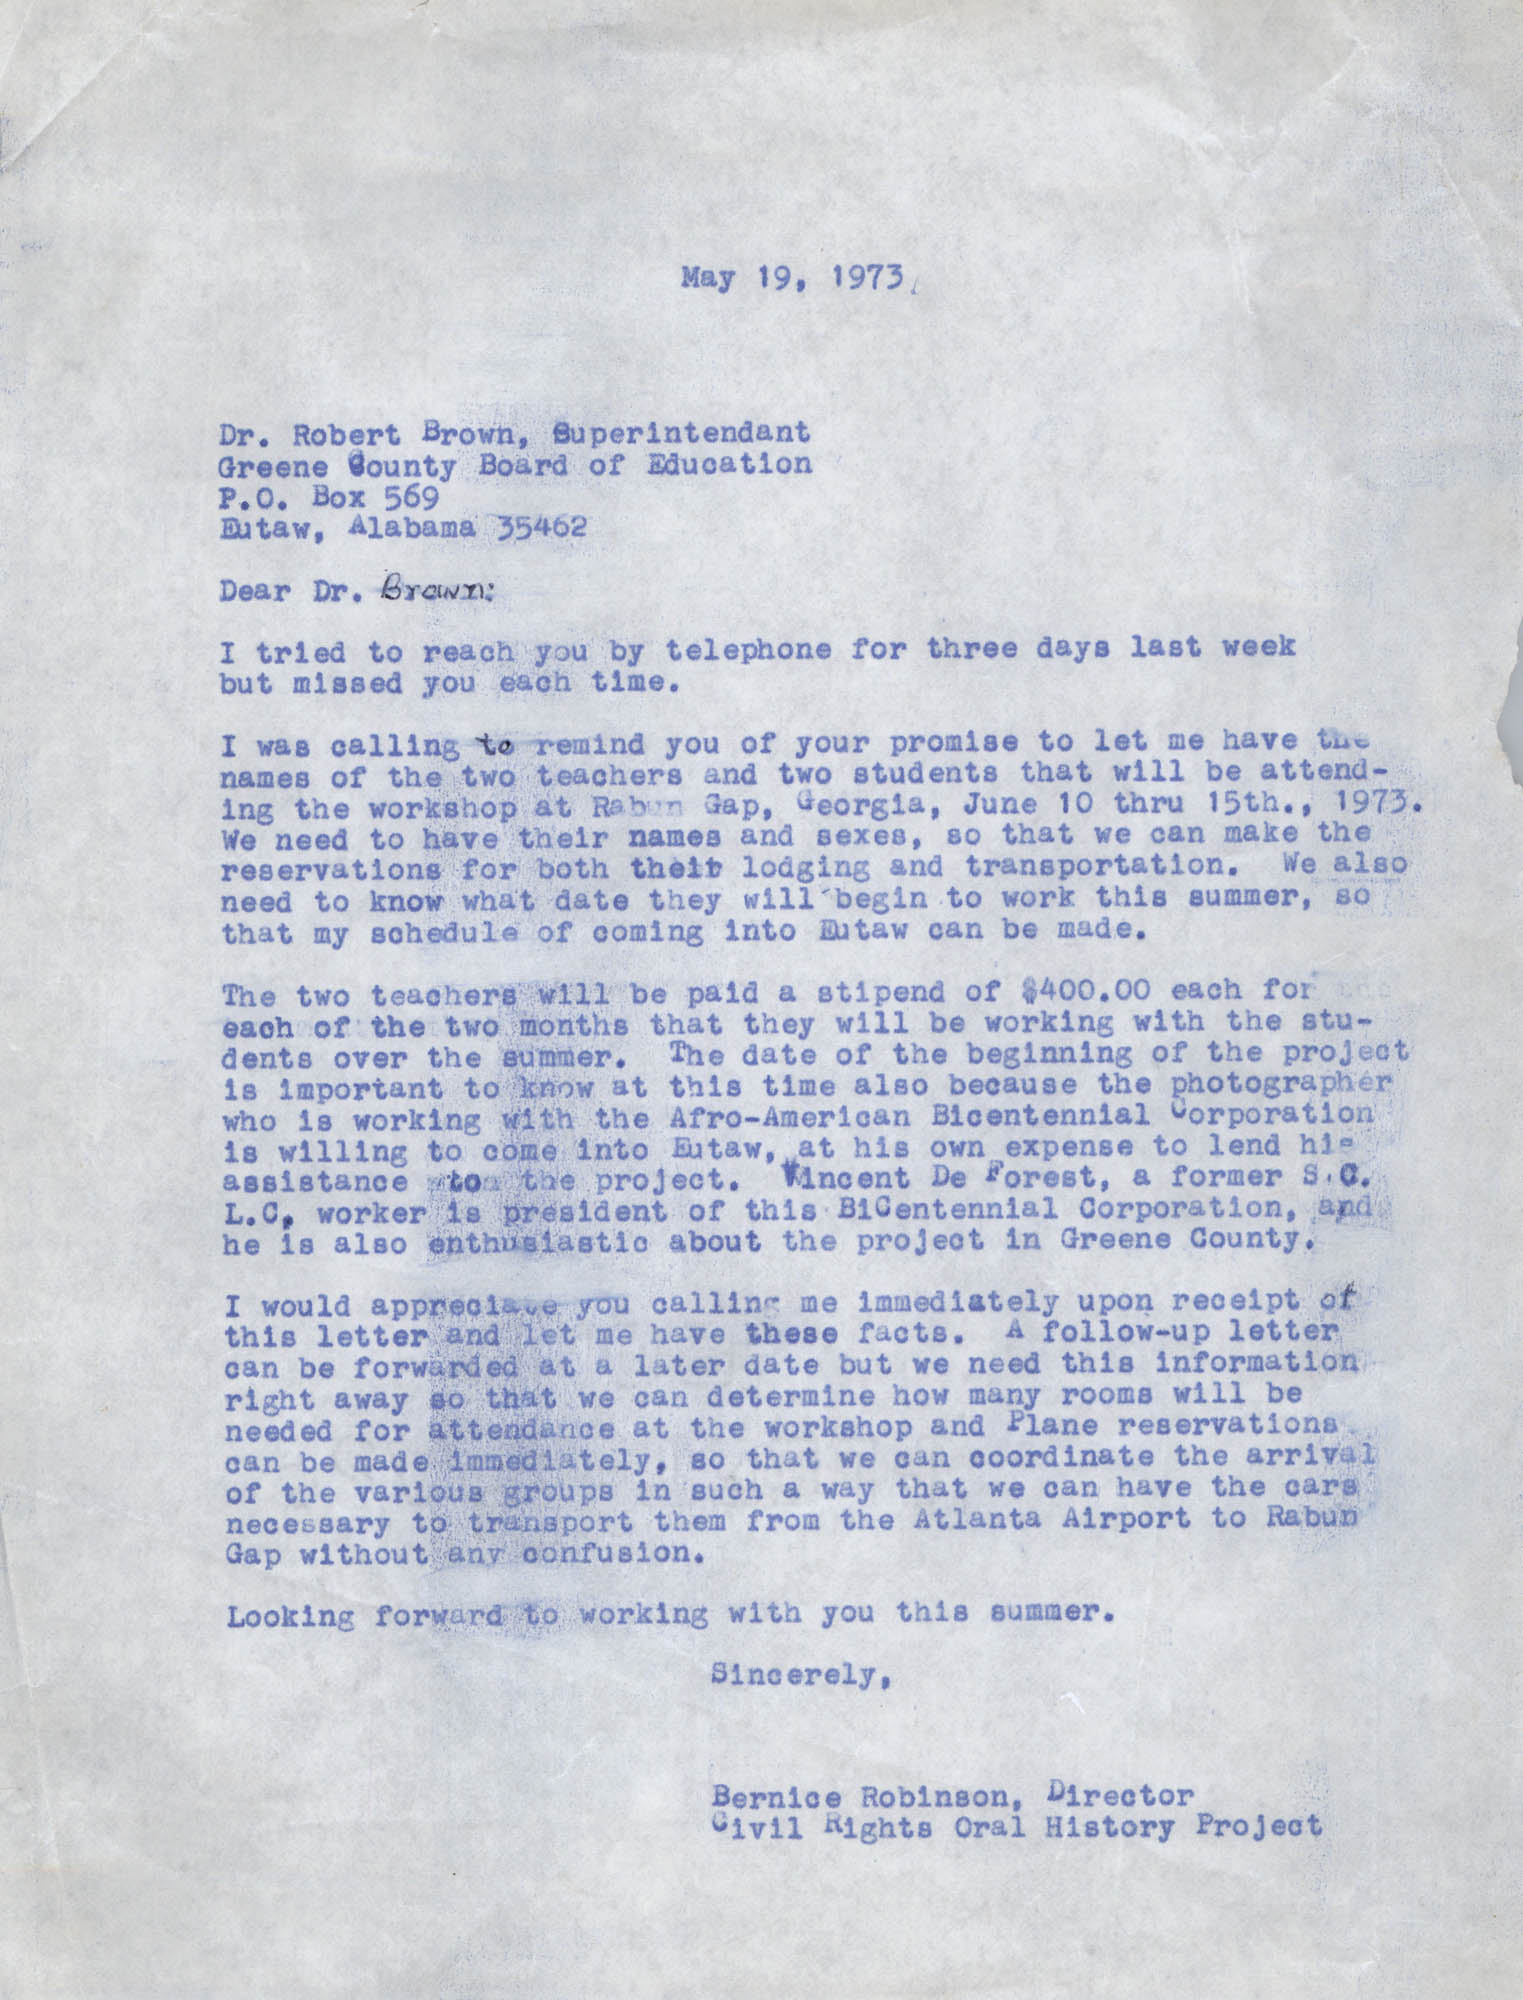 Letter from Bernice Robinson to Robert Brown, May 19, 1973